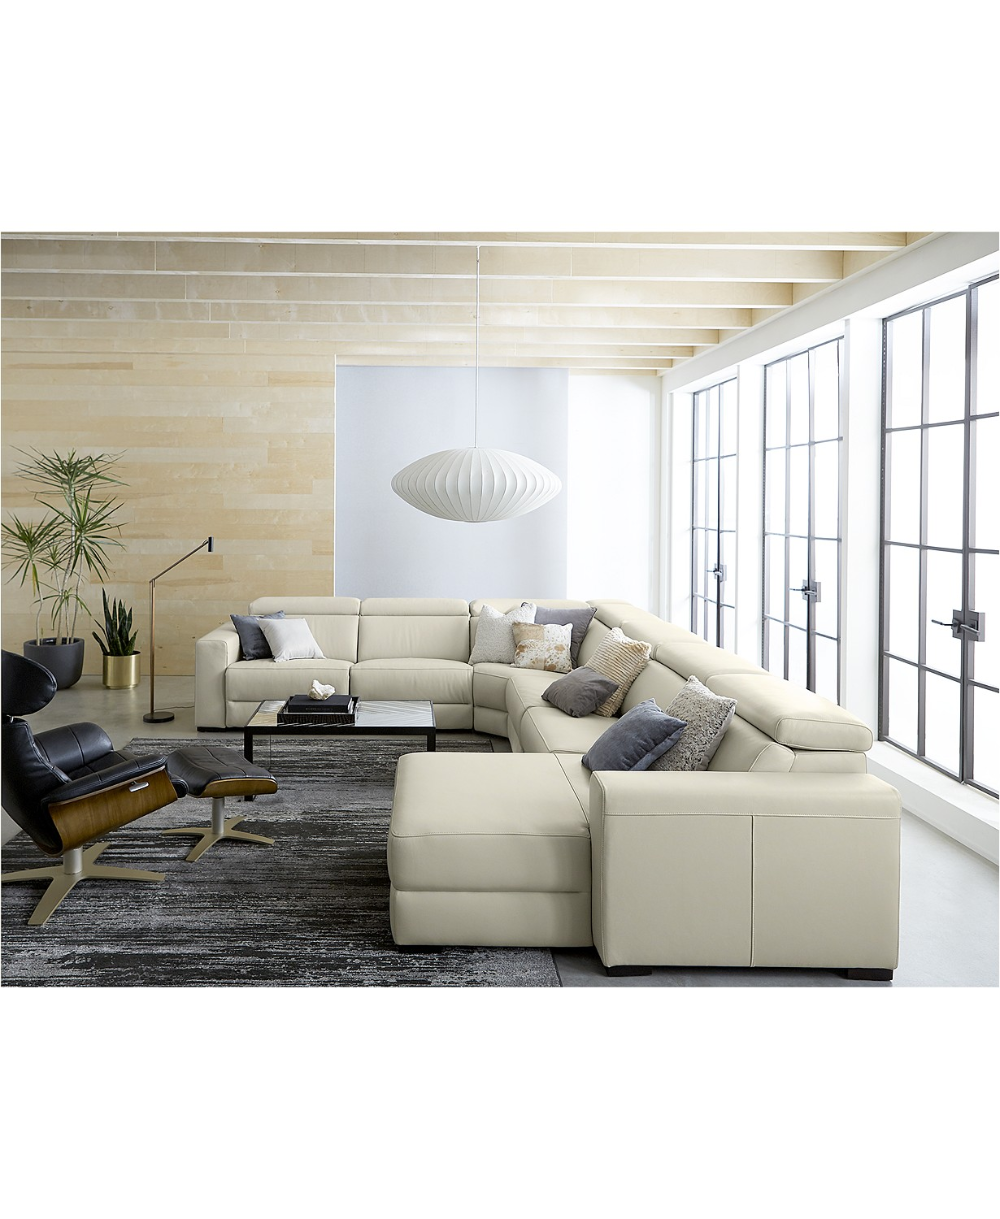 Furniture Nevio 5 Pc Leather Sectional Sofa With Chaise Leather Couches Living Room Power Reclining Sectional Sofa